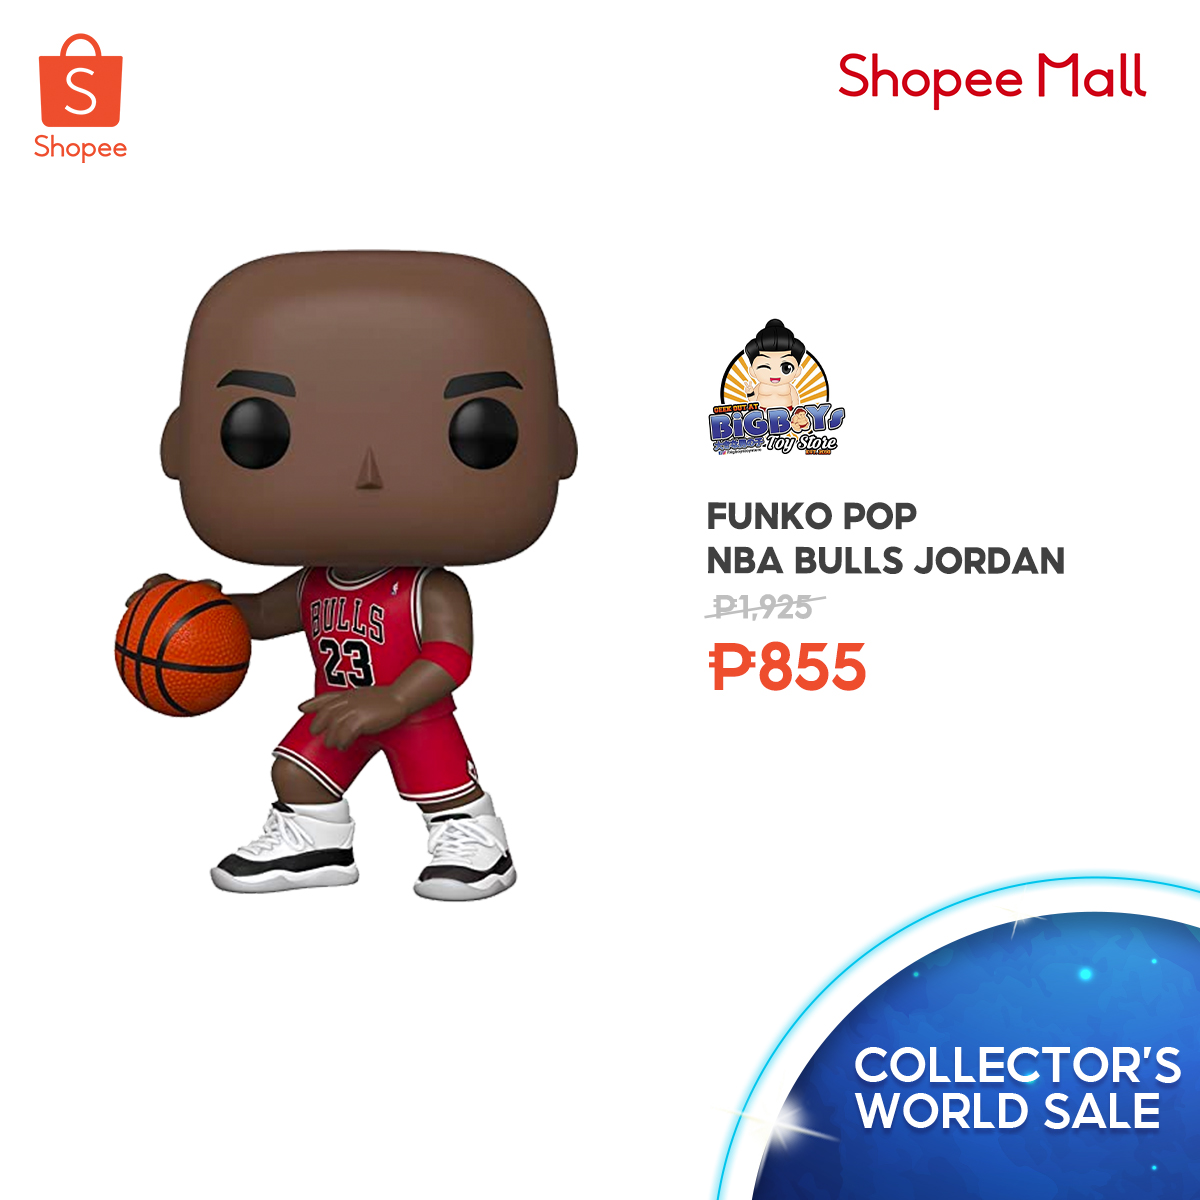 Shopee Collector's World